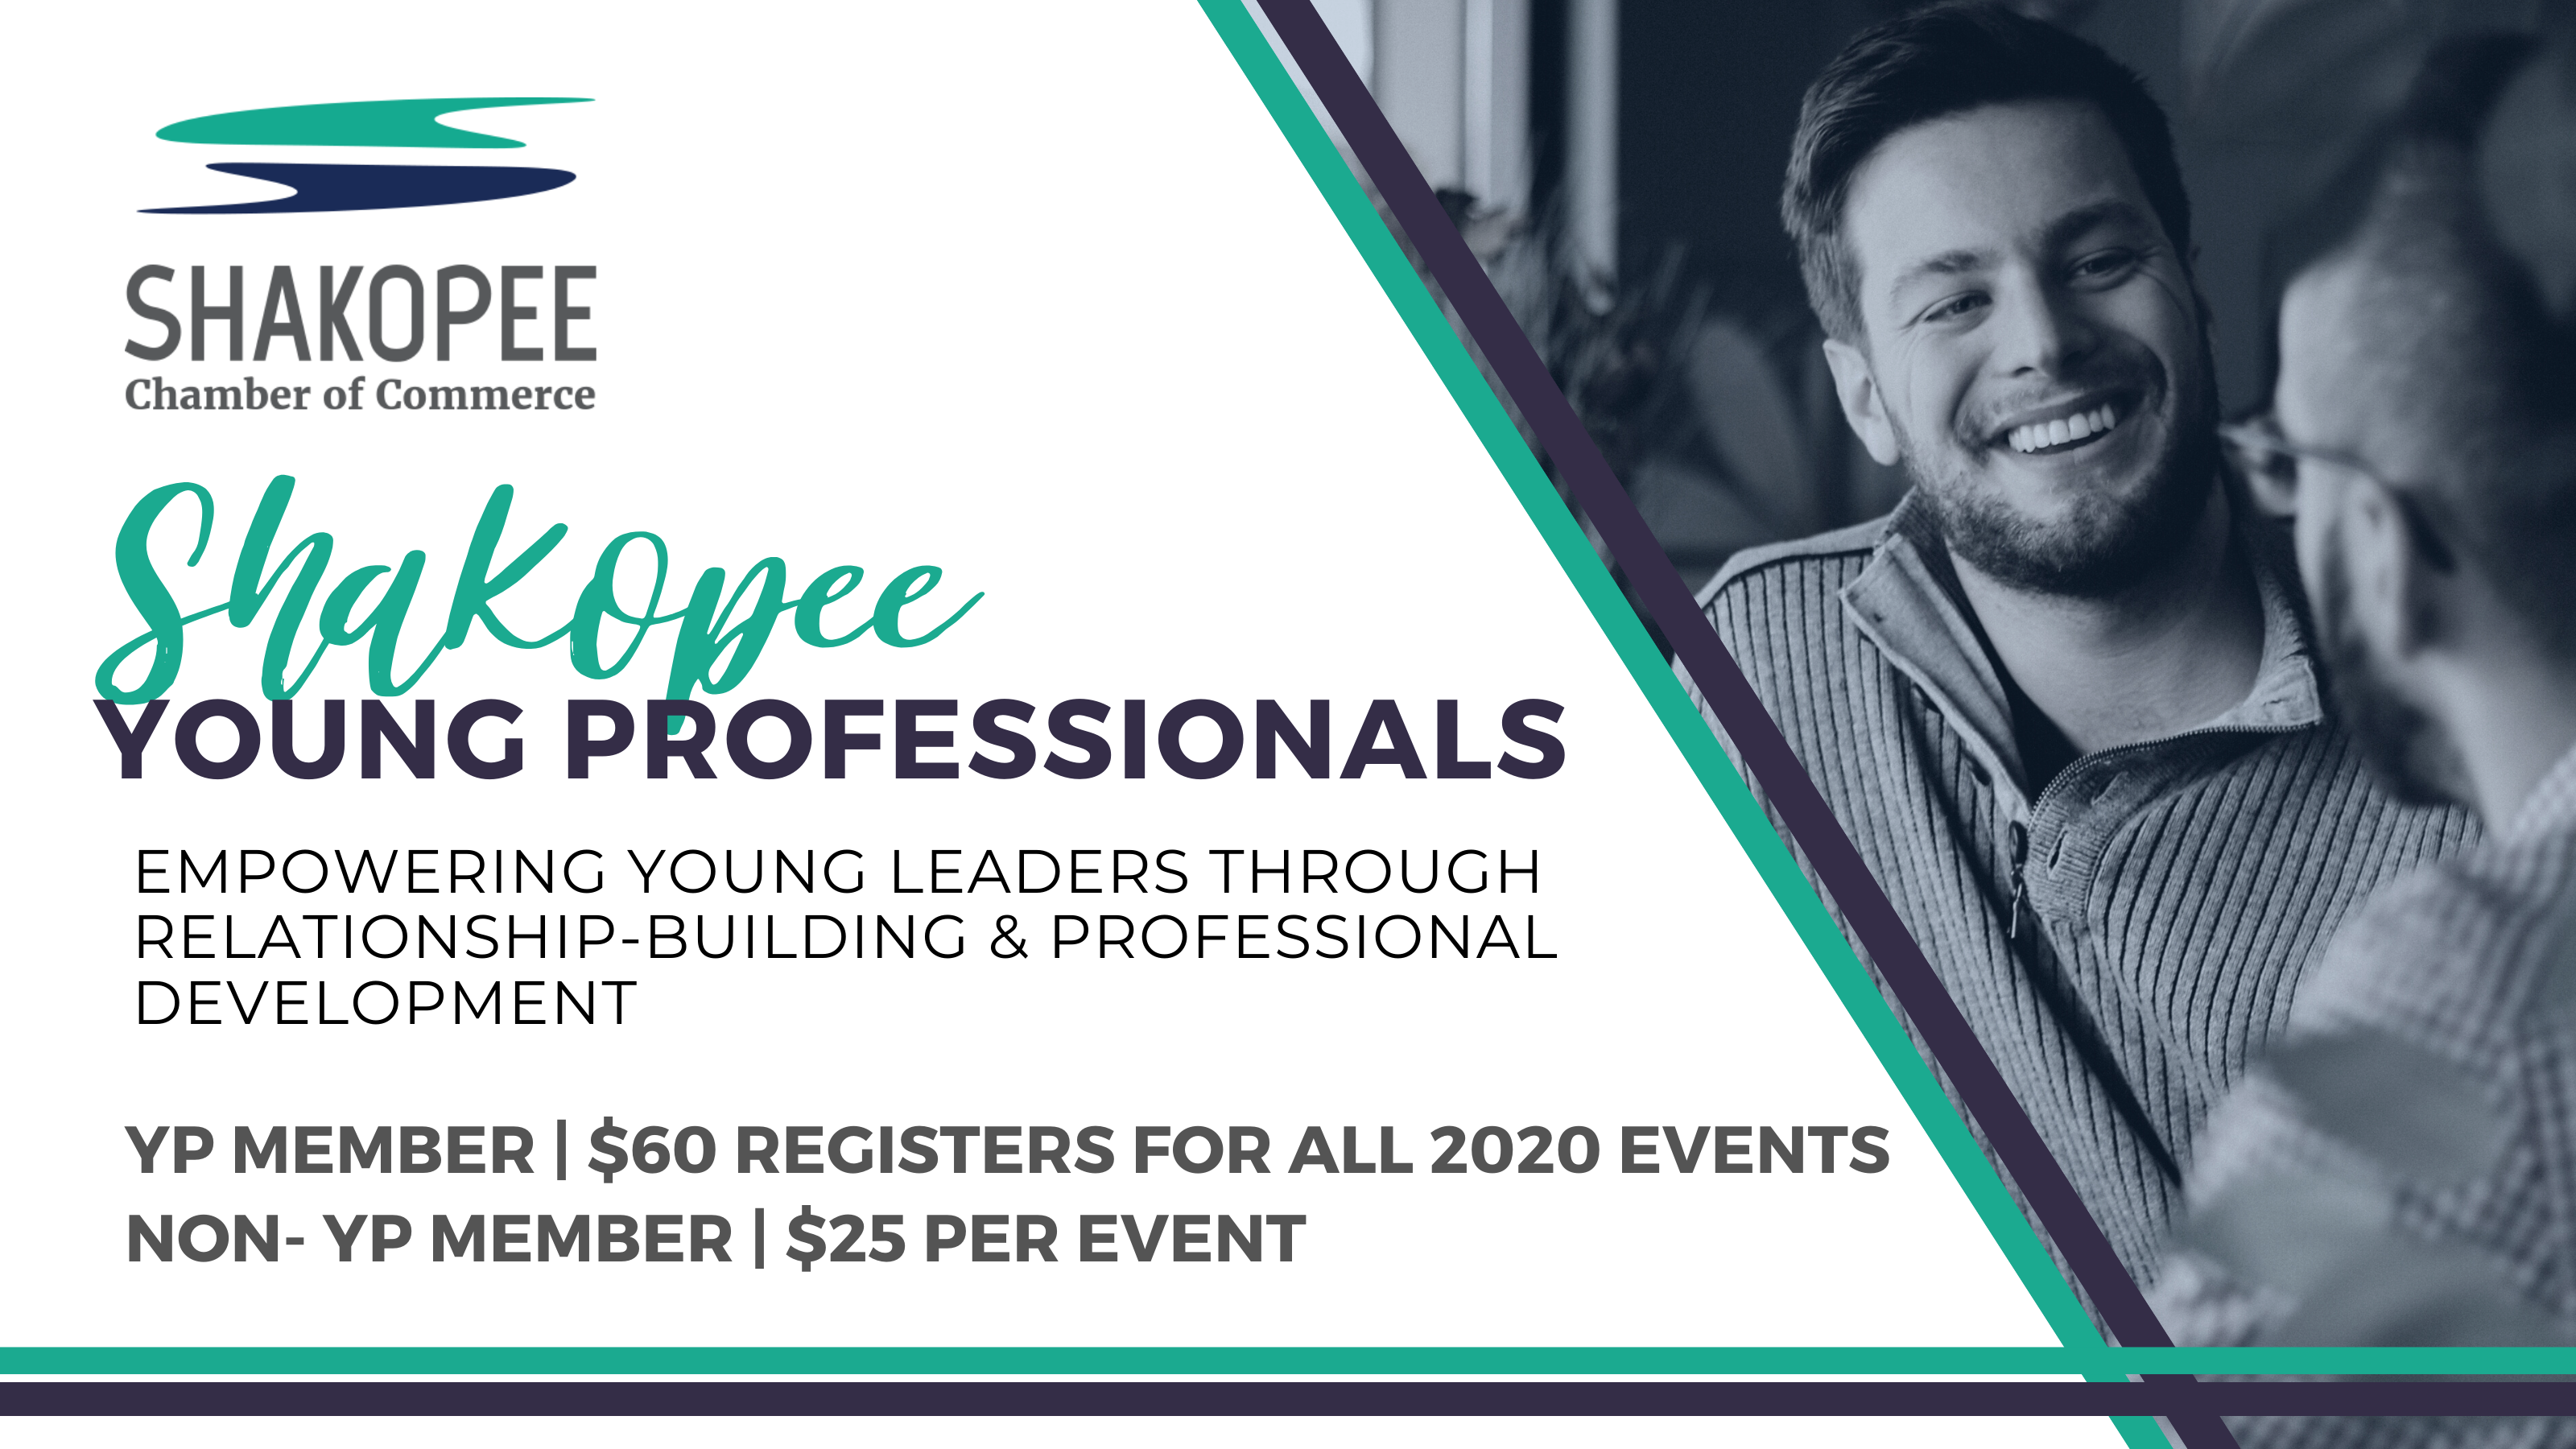 Shakopee Young Professionals- Leadership Development Event